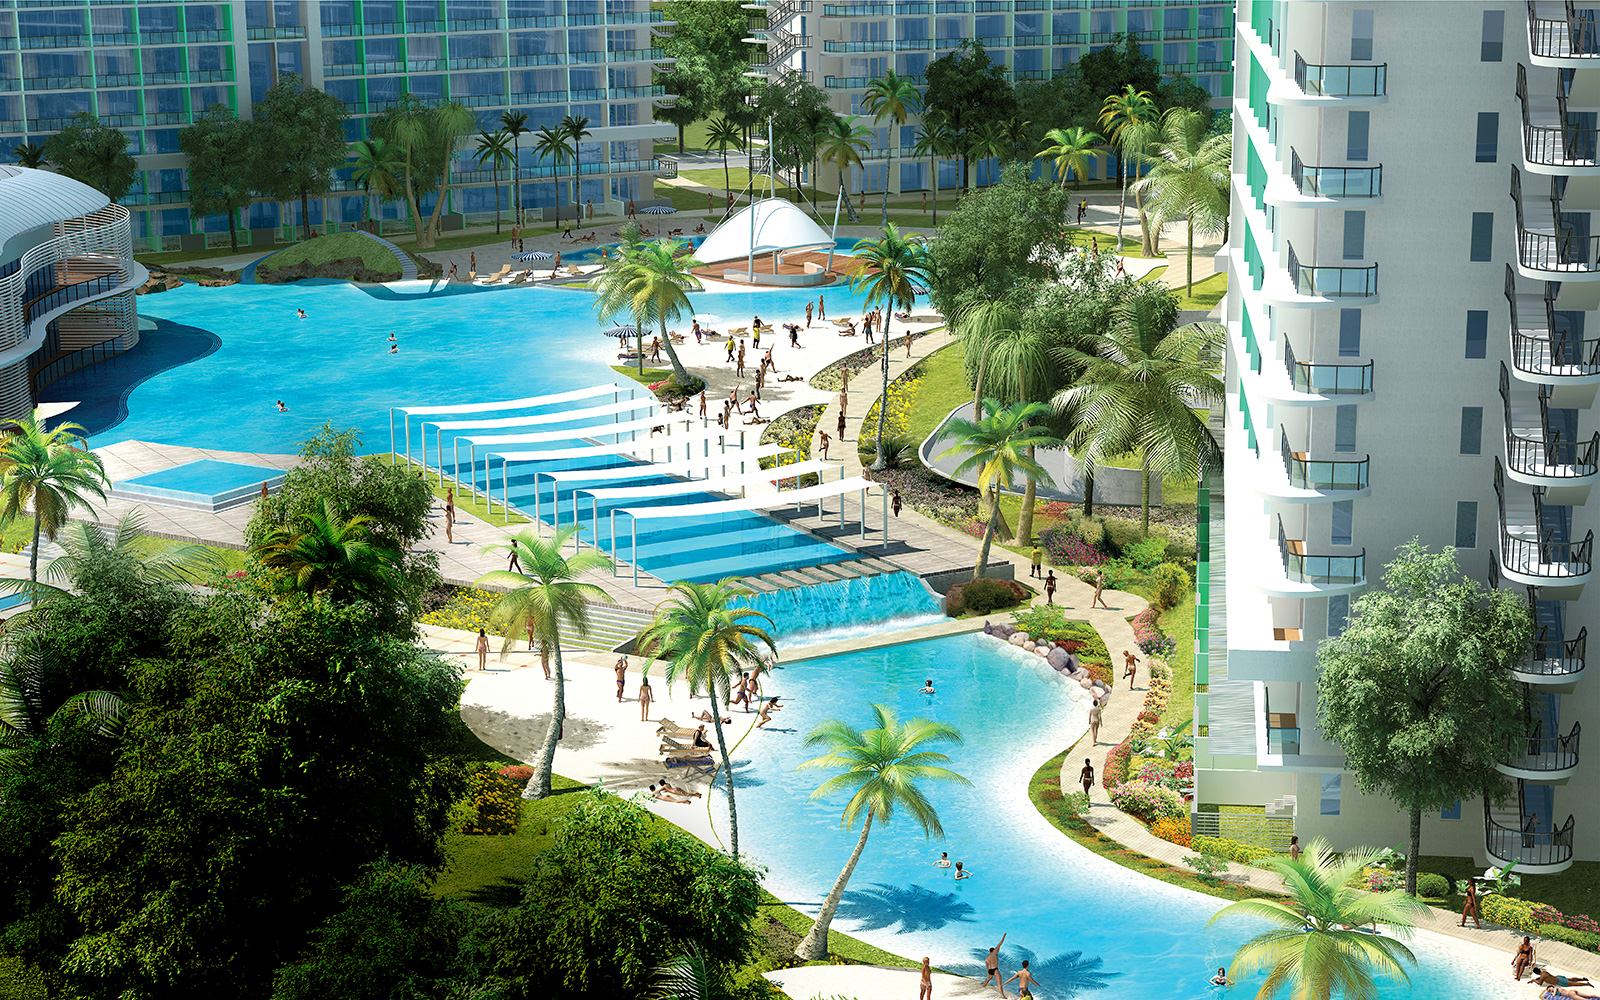 Azure Urban Resort Residences Century Properties Group Inc